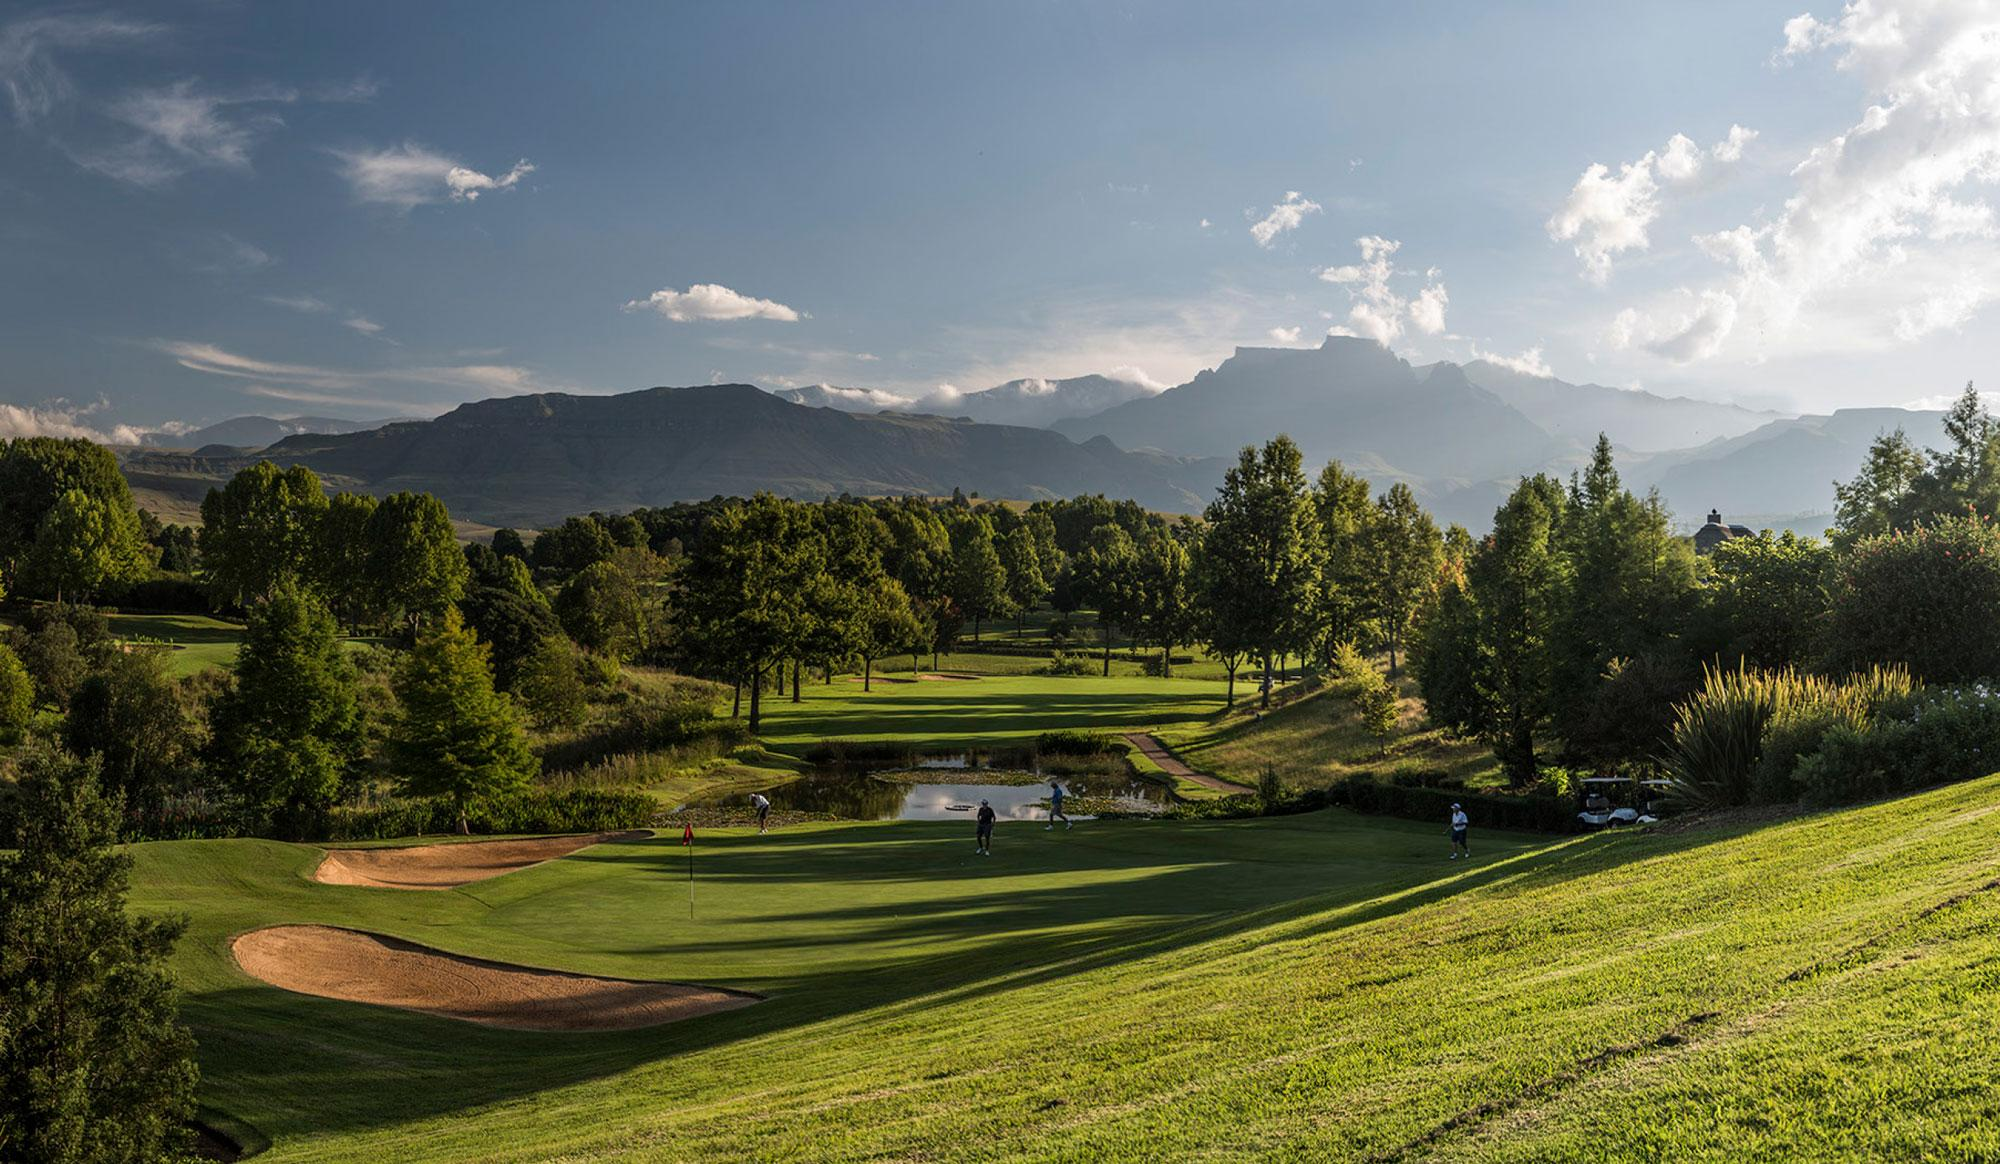 The Champagne Sports Golf Club's beautiful golf course situated in marvelous South Africa.